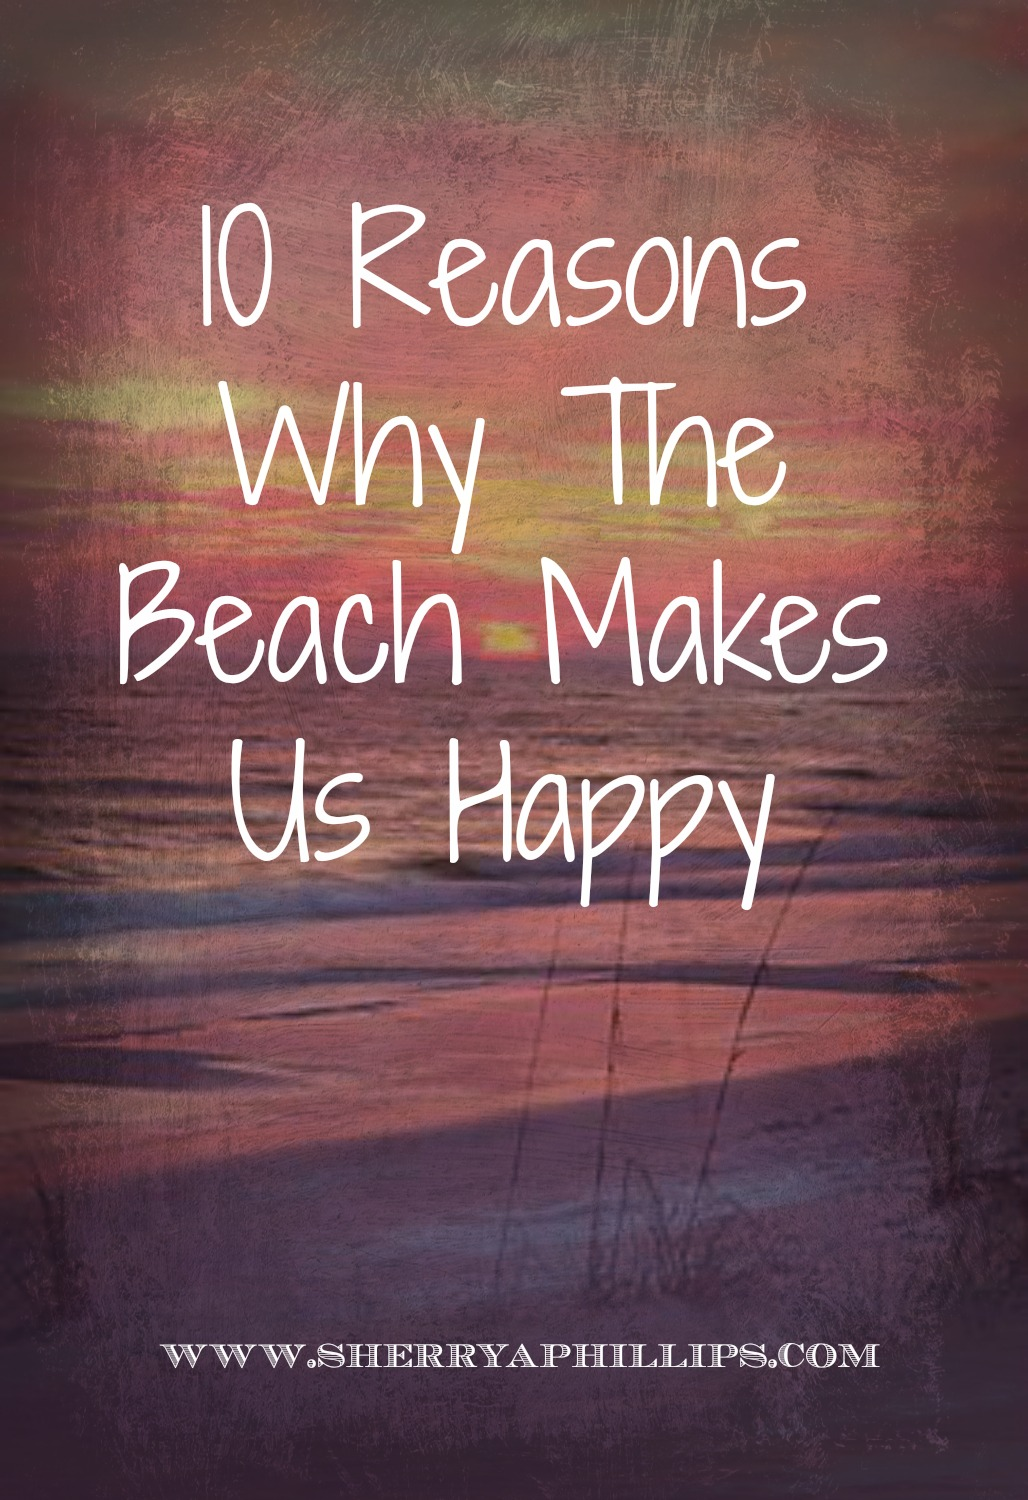 10 Reasons Why The Beach Makes Us Happy